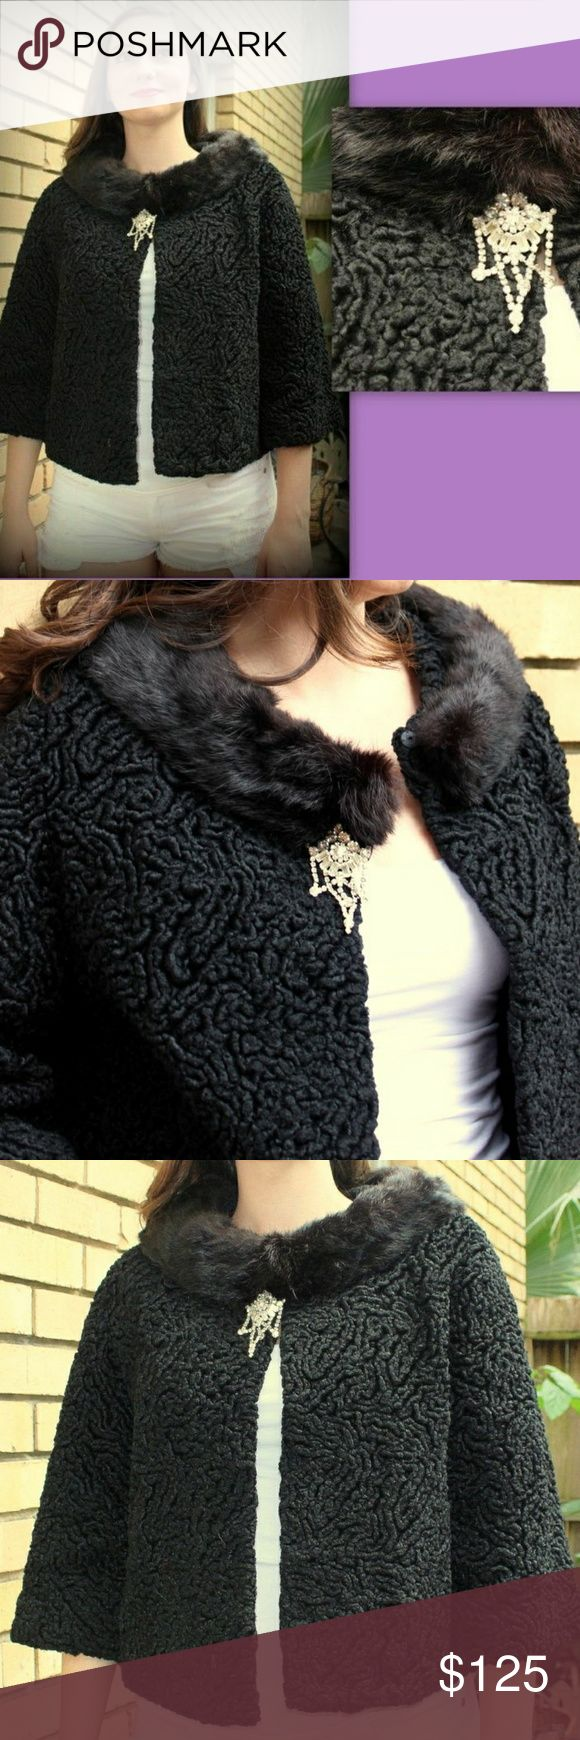 "Vintage MOD Persian Lamb Wool Jacket/Coat MINK FUR ****THIS PRICE IS FIRM UNLESS BUNDLED ******  Vintage 60s Mod PERSIAN CURLY LAMBS WOOL crop Jacket w/BLACK MINK FUR collar.....(Collar is NOT removable; attached)....STUNNING estate piece in EXCELLENT condition; Came with the HUGE White Rhinestone brooch in front that actually dates to the 1950's. BROOCH IS REMOVABLE AND GORGEOUS!  Jacket fits a modern size Small/Medium or 4 - 8 with its open silhouette; Approx 22"" long, 40/42"" at bust, 40""…"